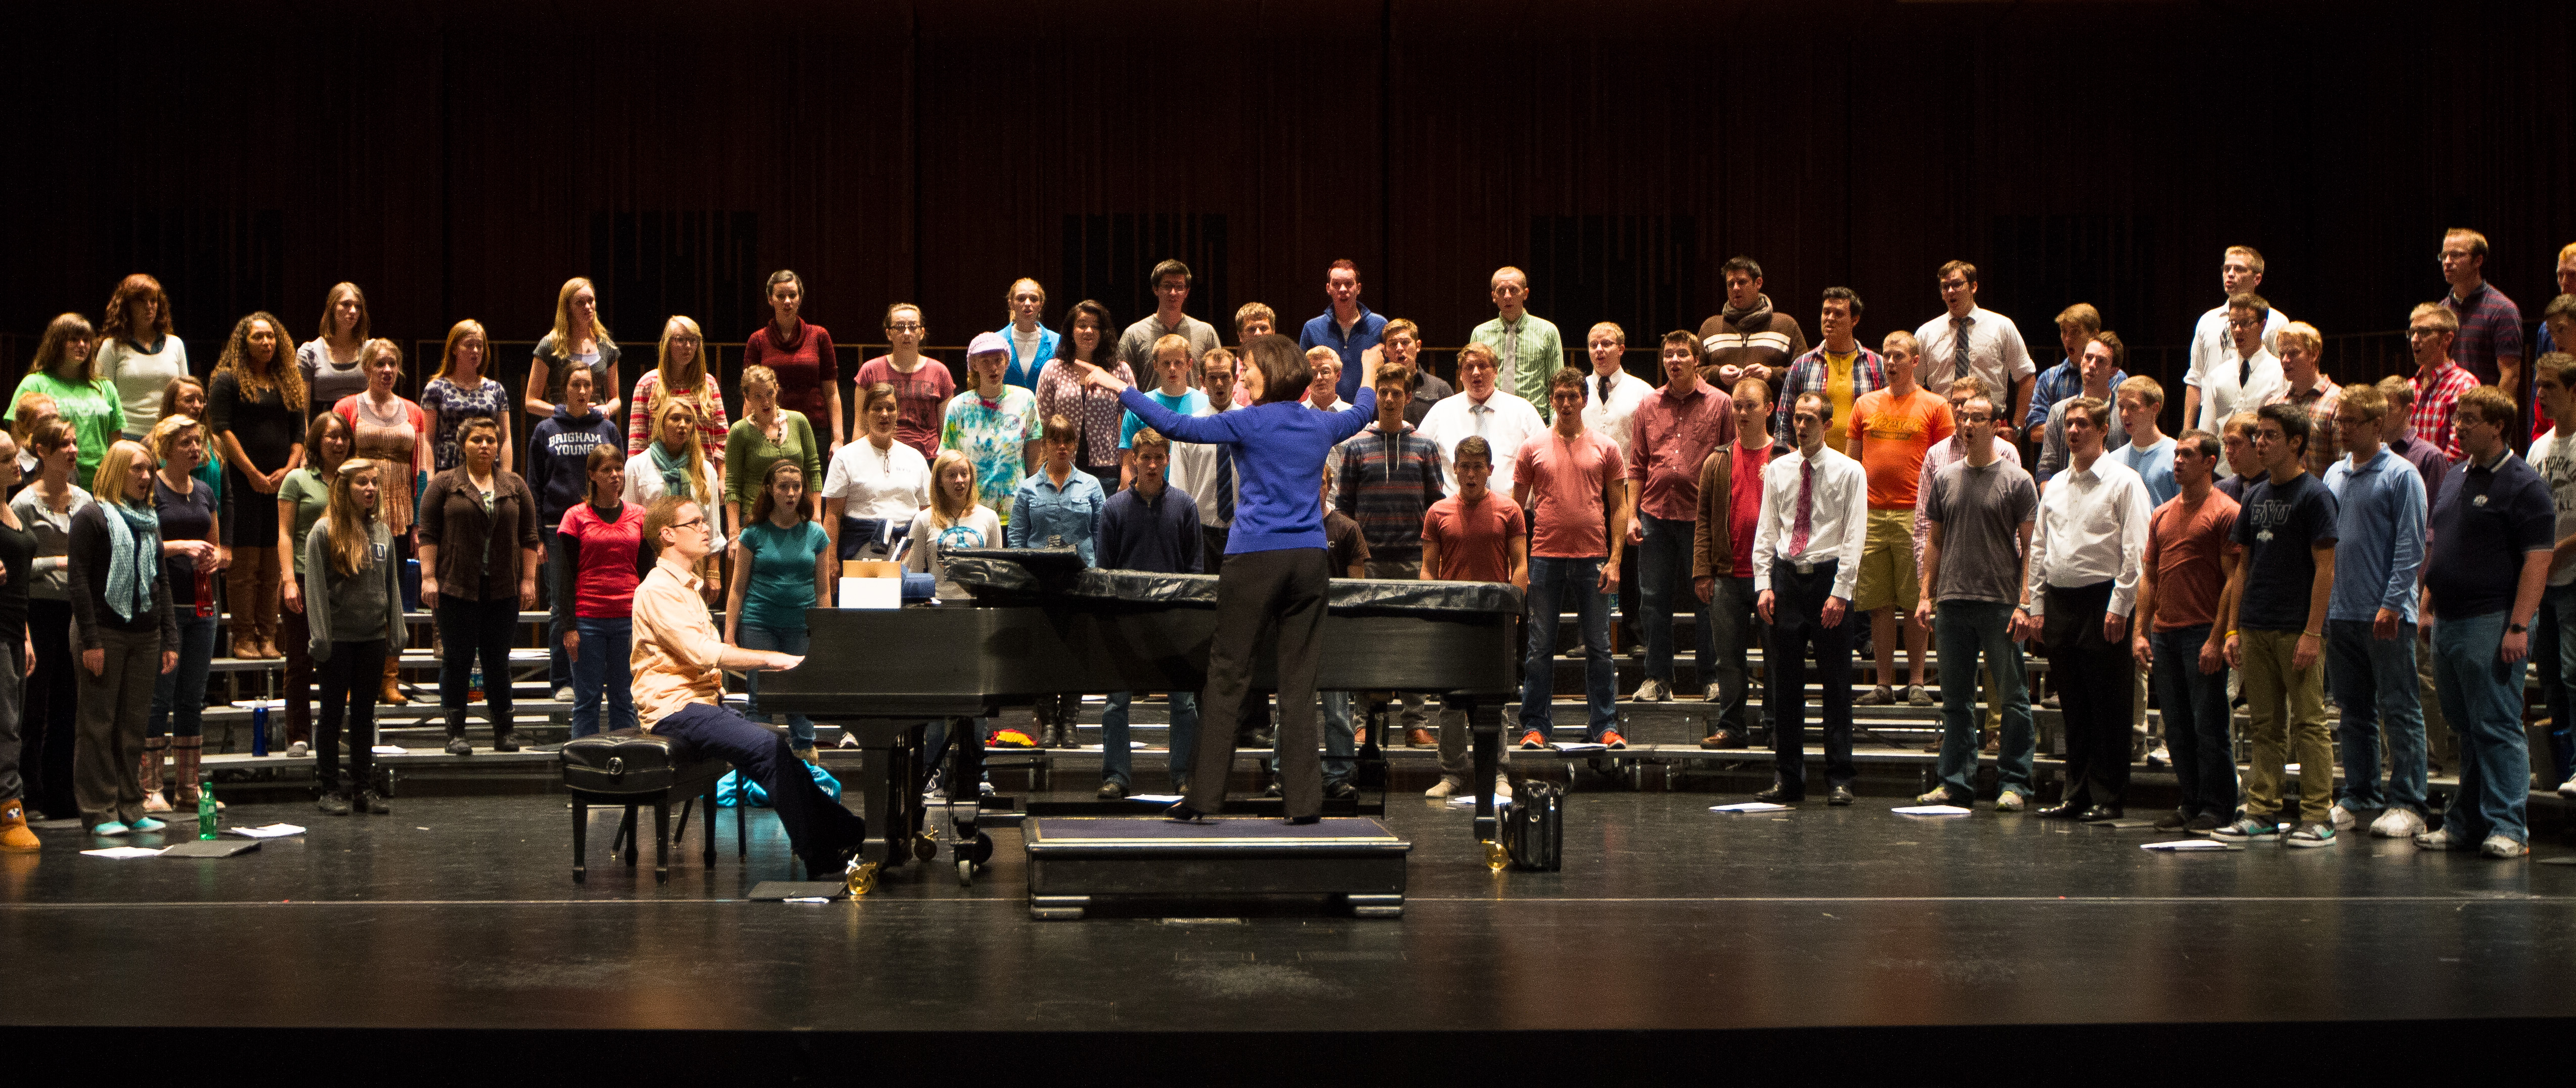 Sister Hall conducts the Concert Choir during a rehersal on Thursday afternoon.